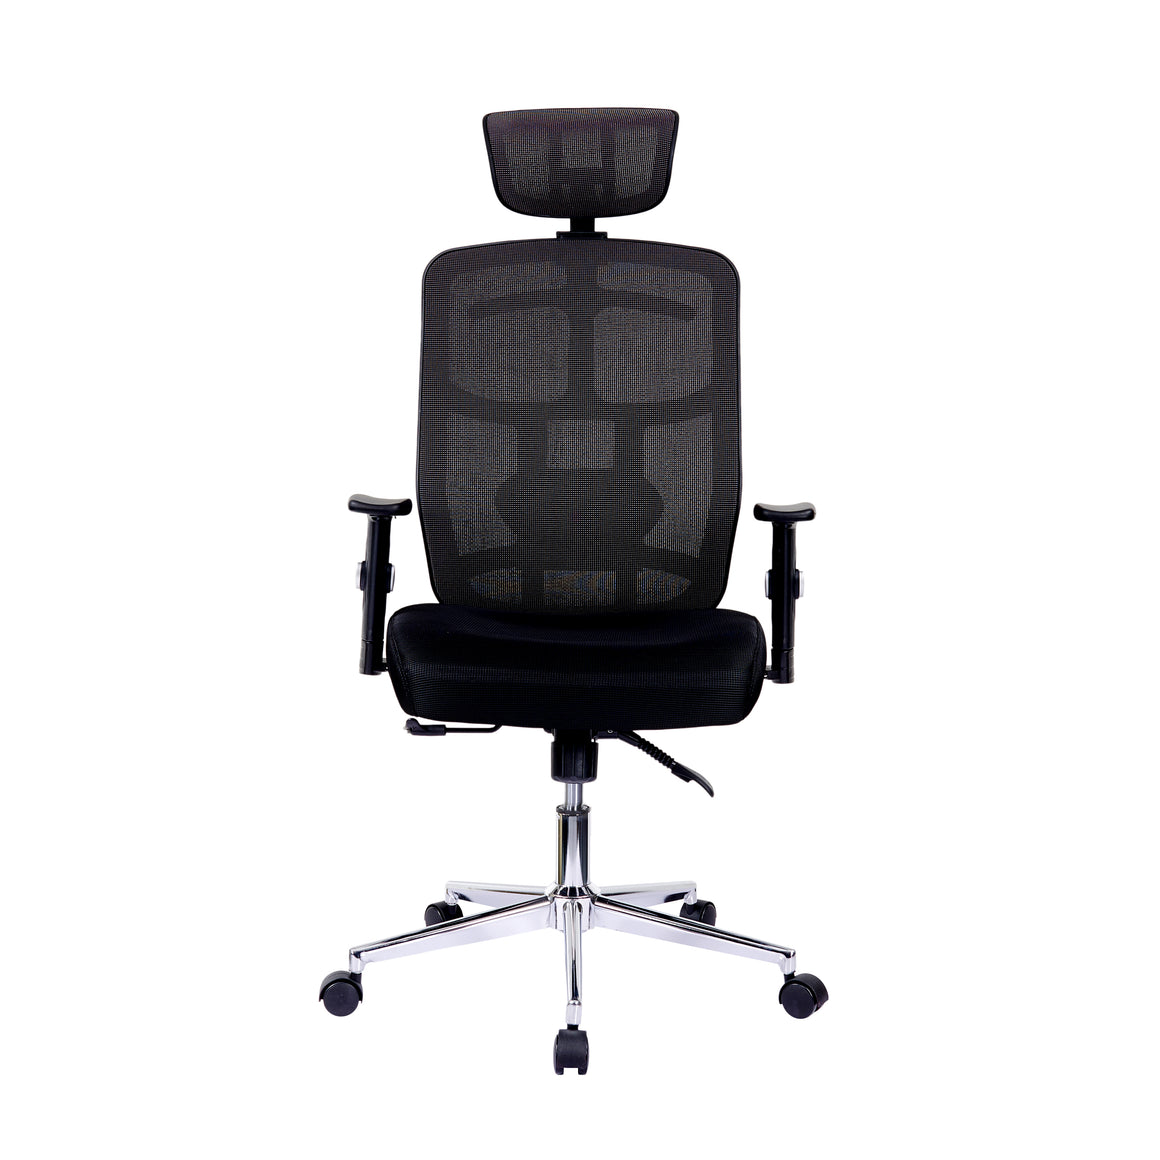 High Back Executive Mesh Office Chair with Arms, Lumbar Support and Chrome Base